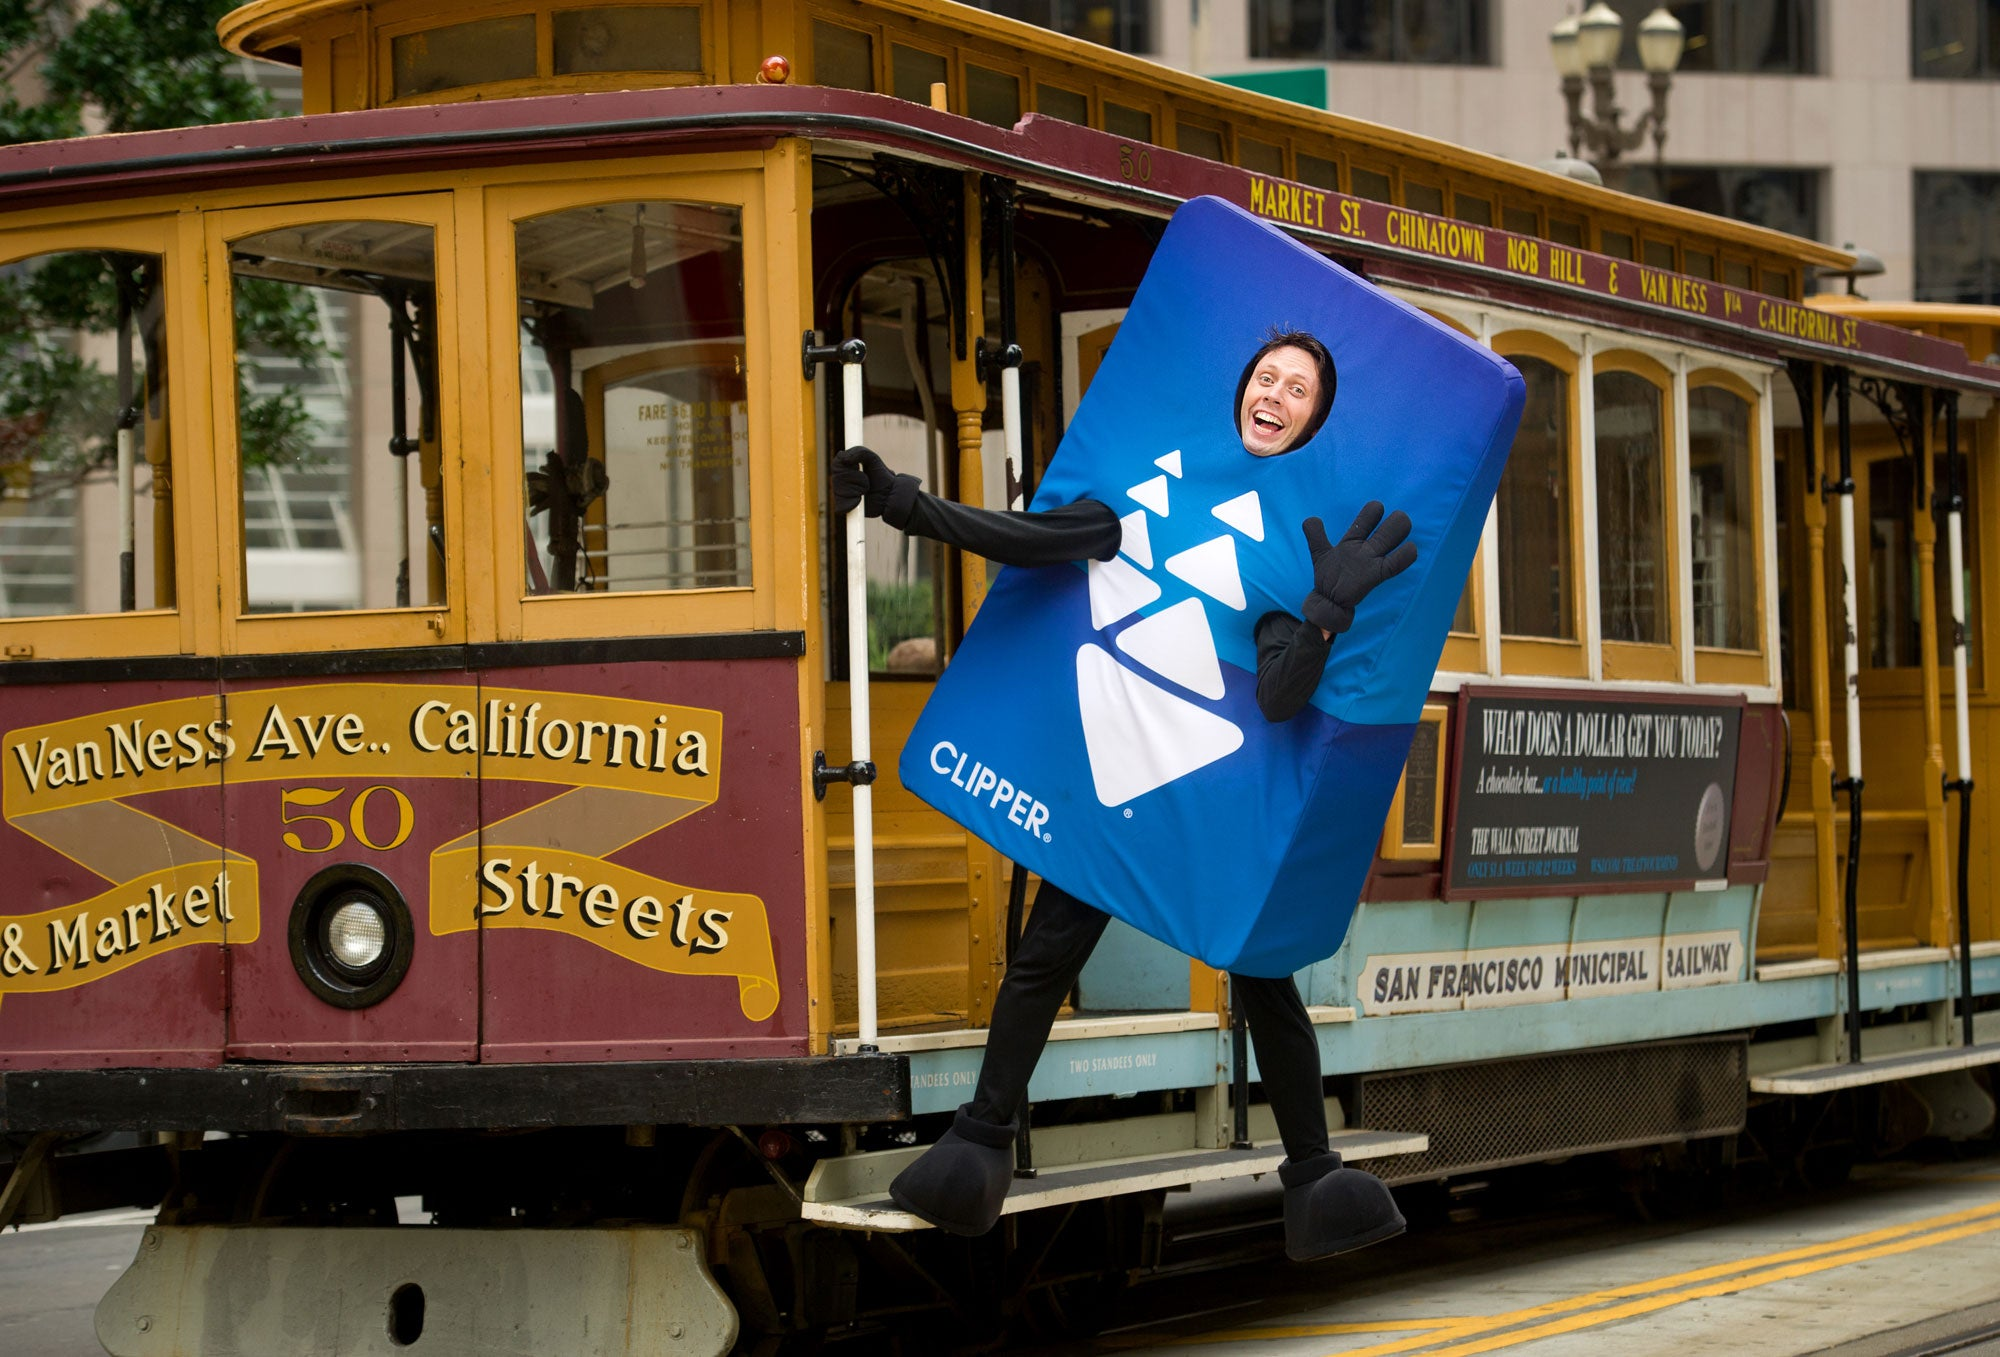 Clipper Card mascot on Cable Car in SF